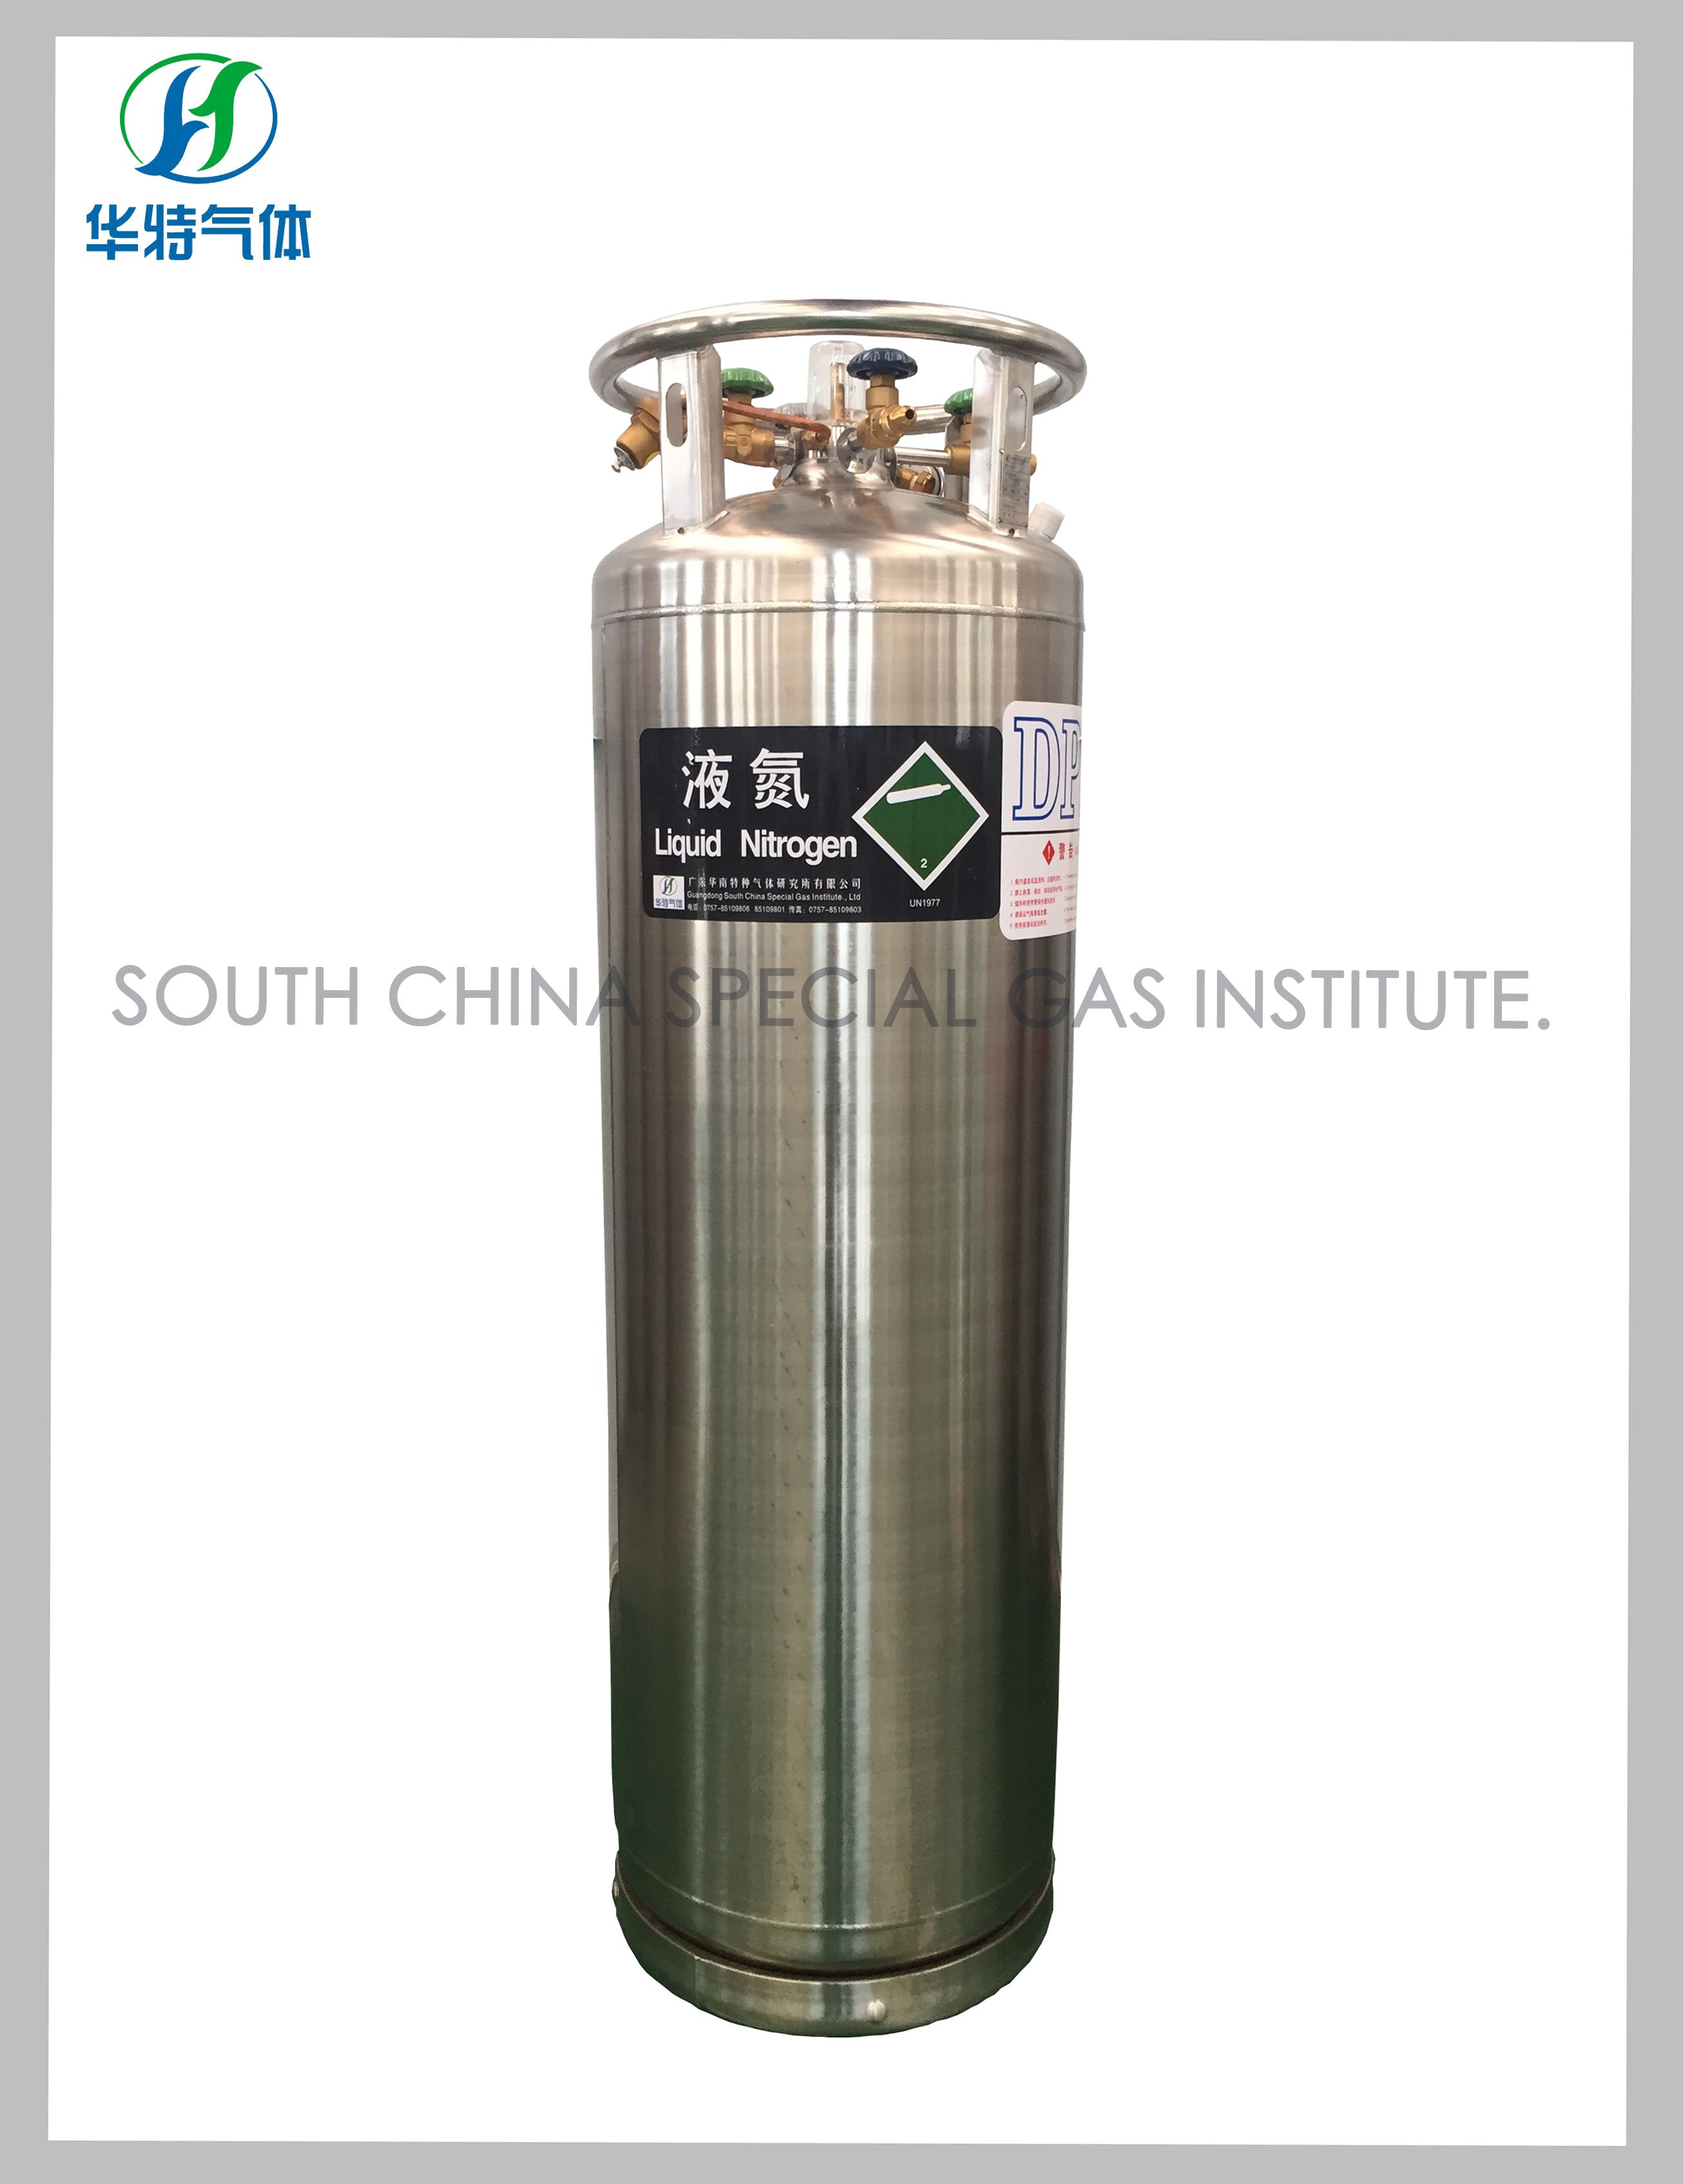 We are a greyhair Gas equipment manufacture since 1993